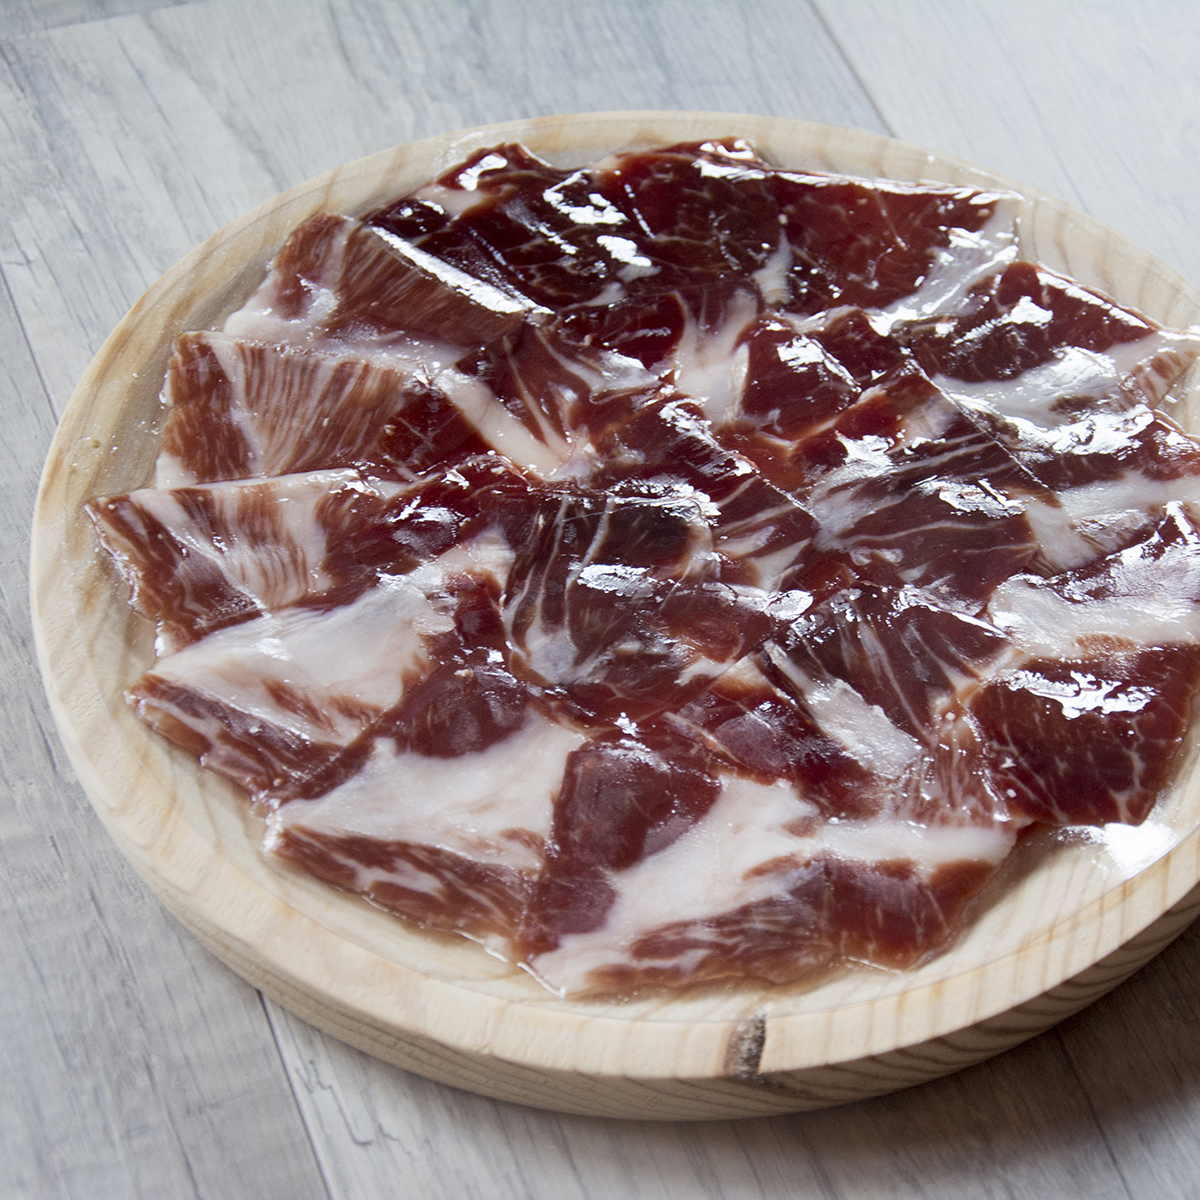 Fodder-Fed Iberian Ham cut with knife